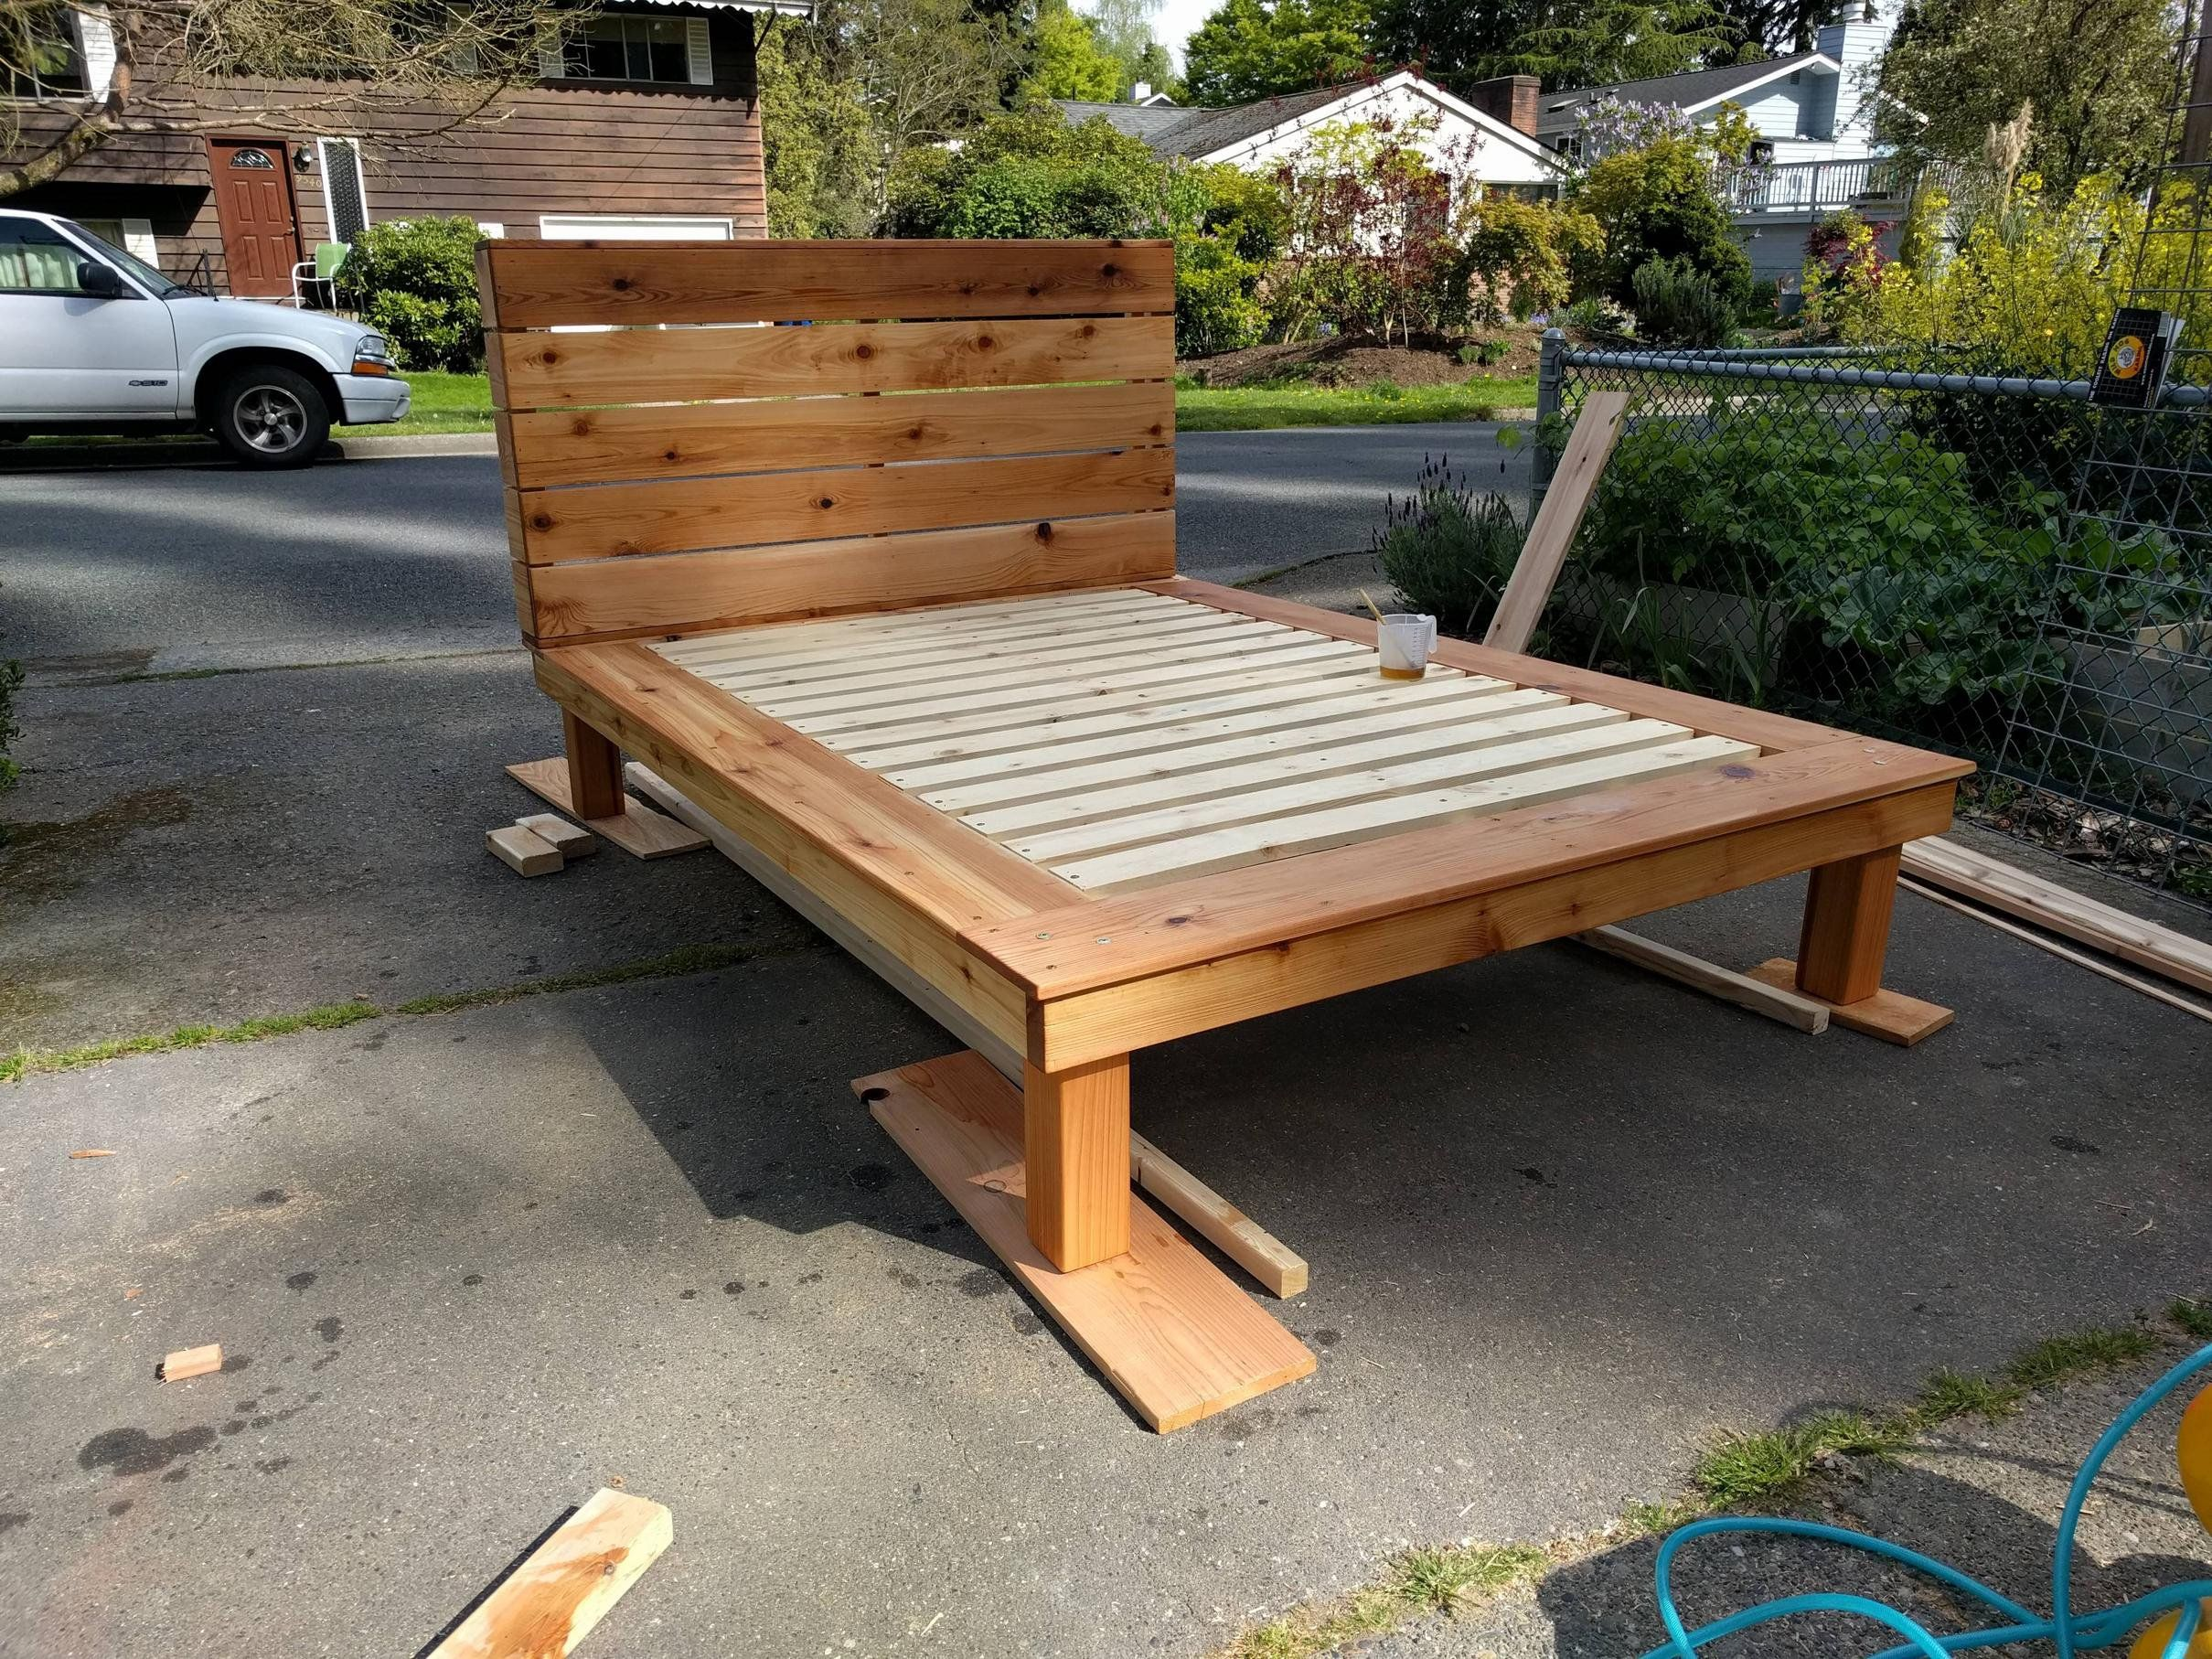 Made a Cedar bed frame woodworking Woodworking plans